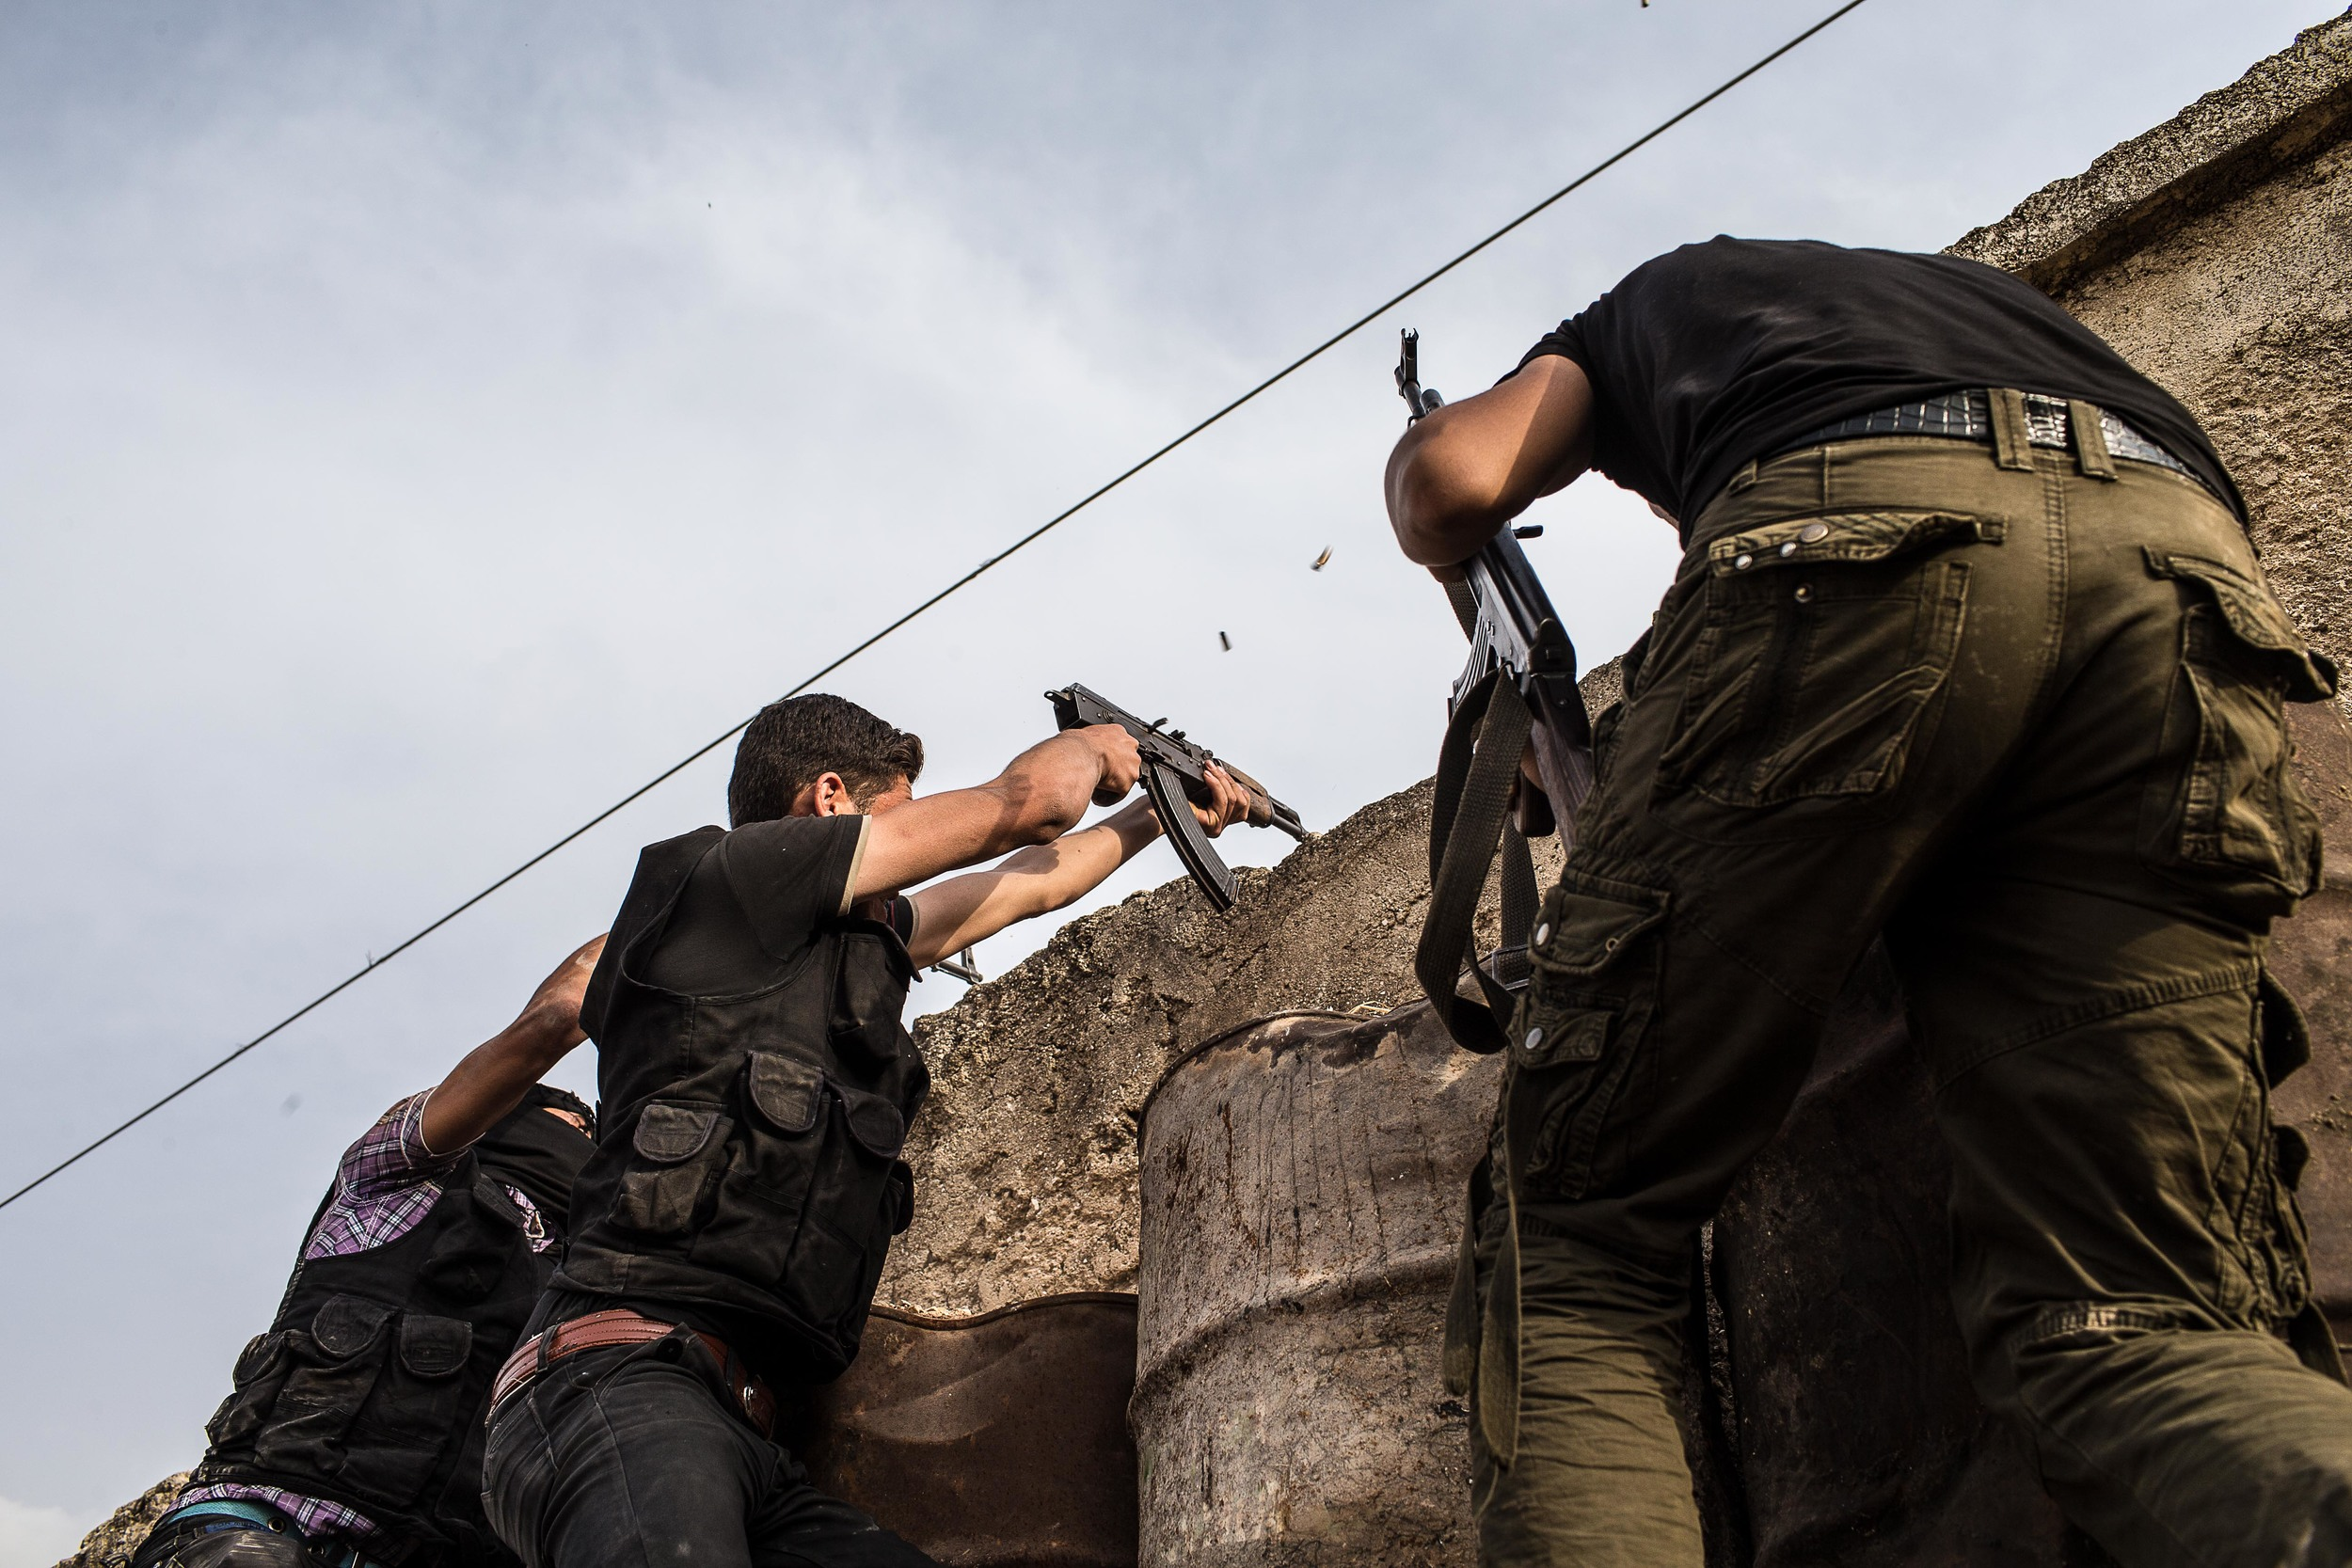 Fighters trade shots with regime soldiers across the wall.